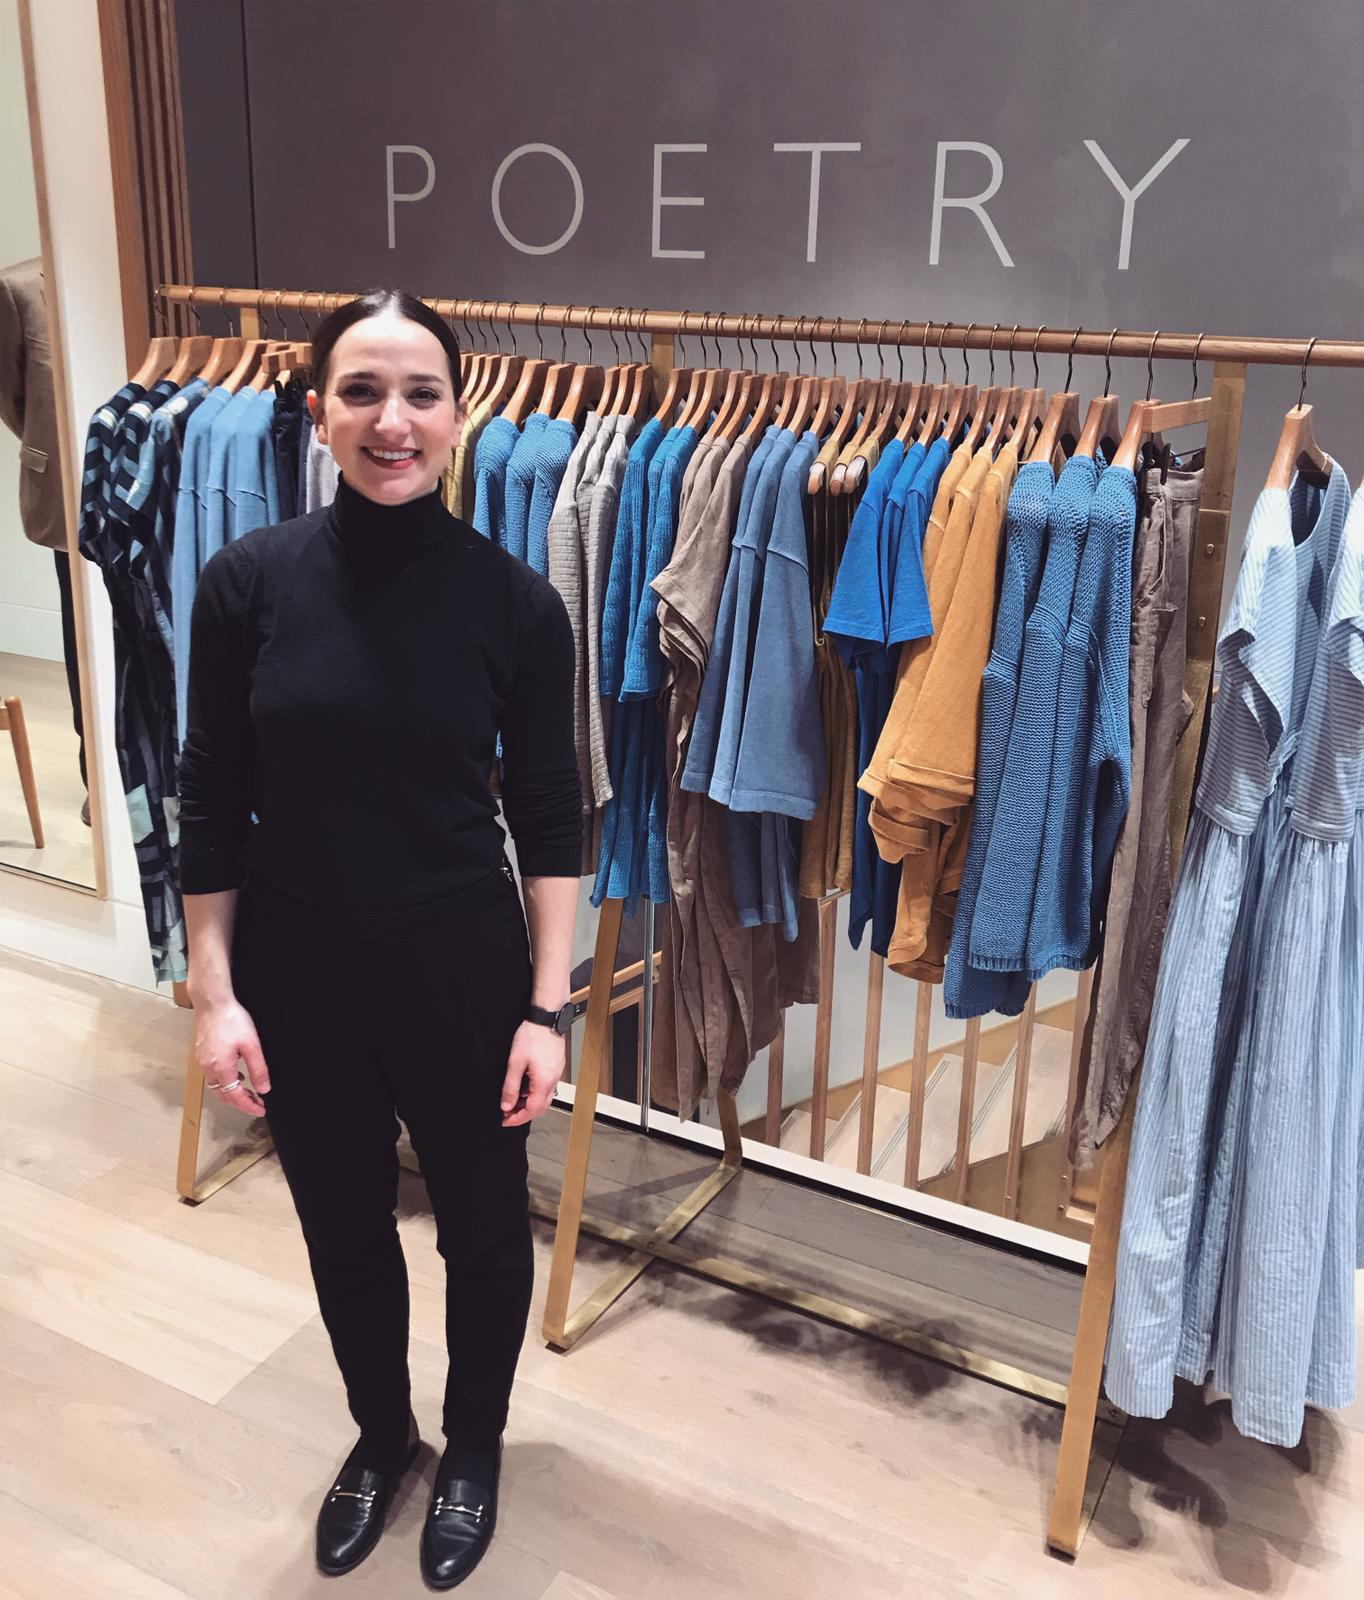 Flair Recruitment Supports The Poetry Fashion Boutiques In London